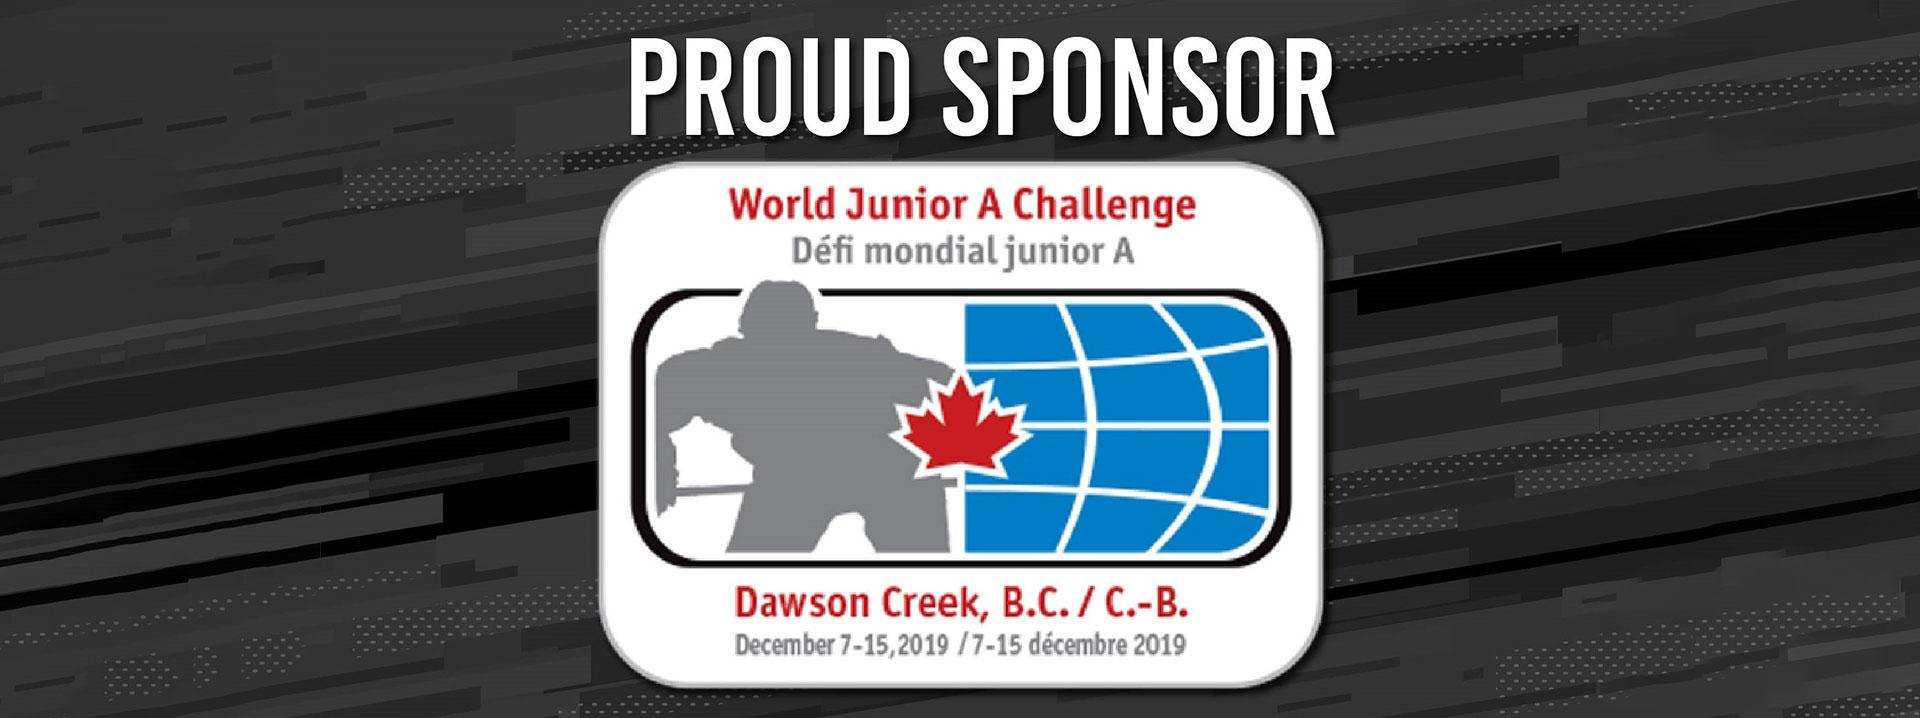 World Junior A Challenge